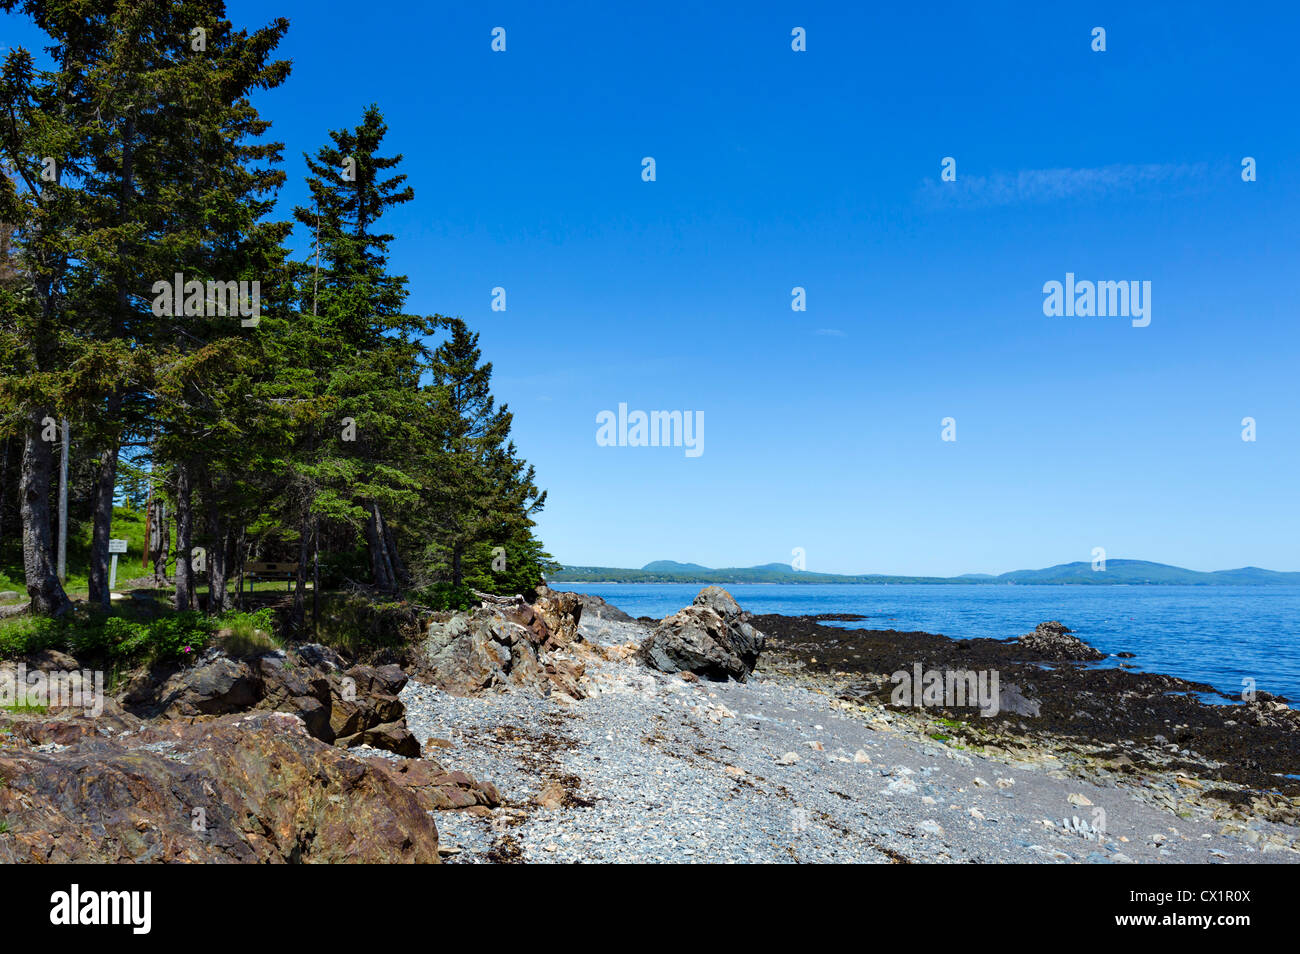 Beach in Owl's Head Light State Park on St George Peninsula, Knox County, Maine, USA - Stock Image